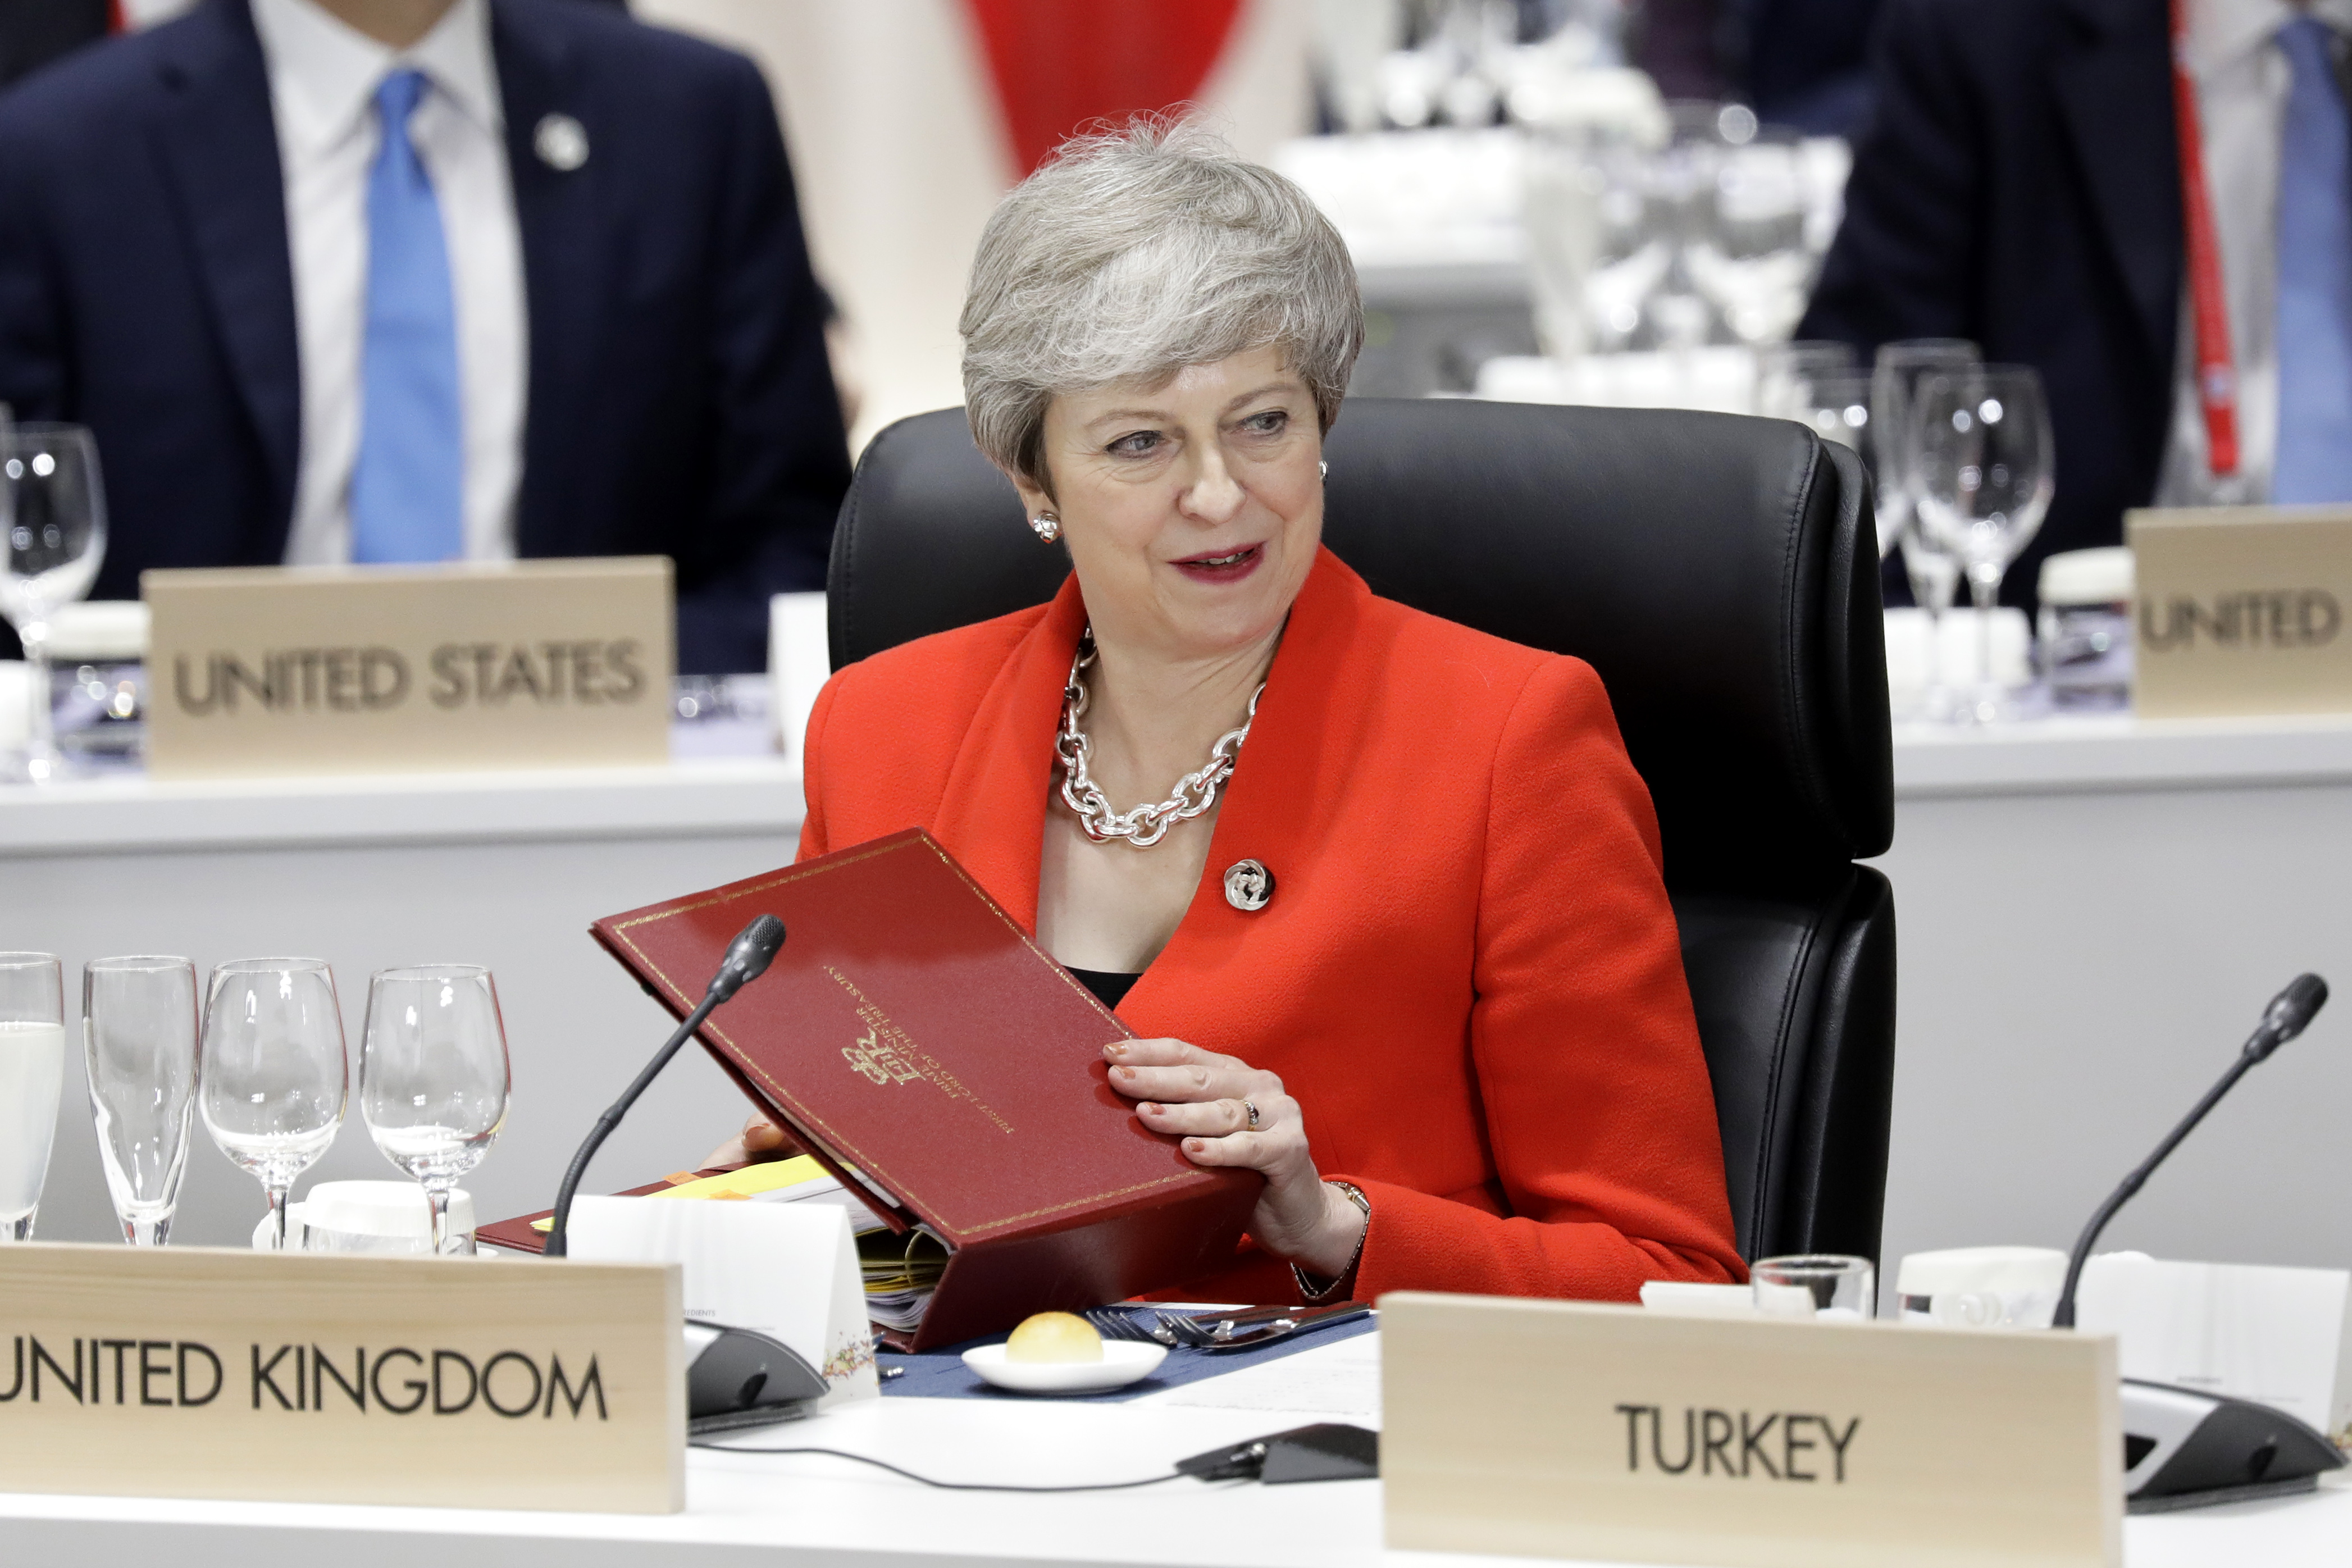 Britain's Prime Minister Theresa May attends a working lunch at the G20 summit in Osaka on June 28.